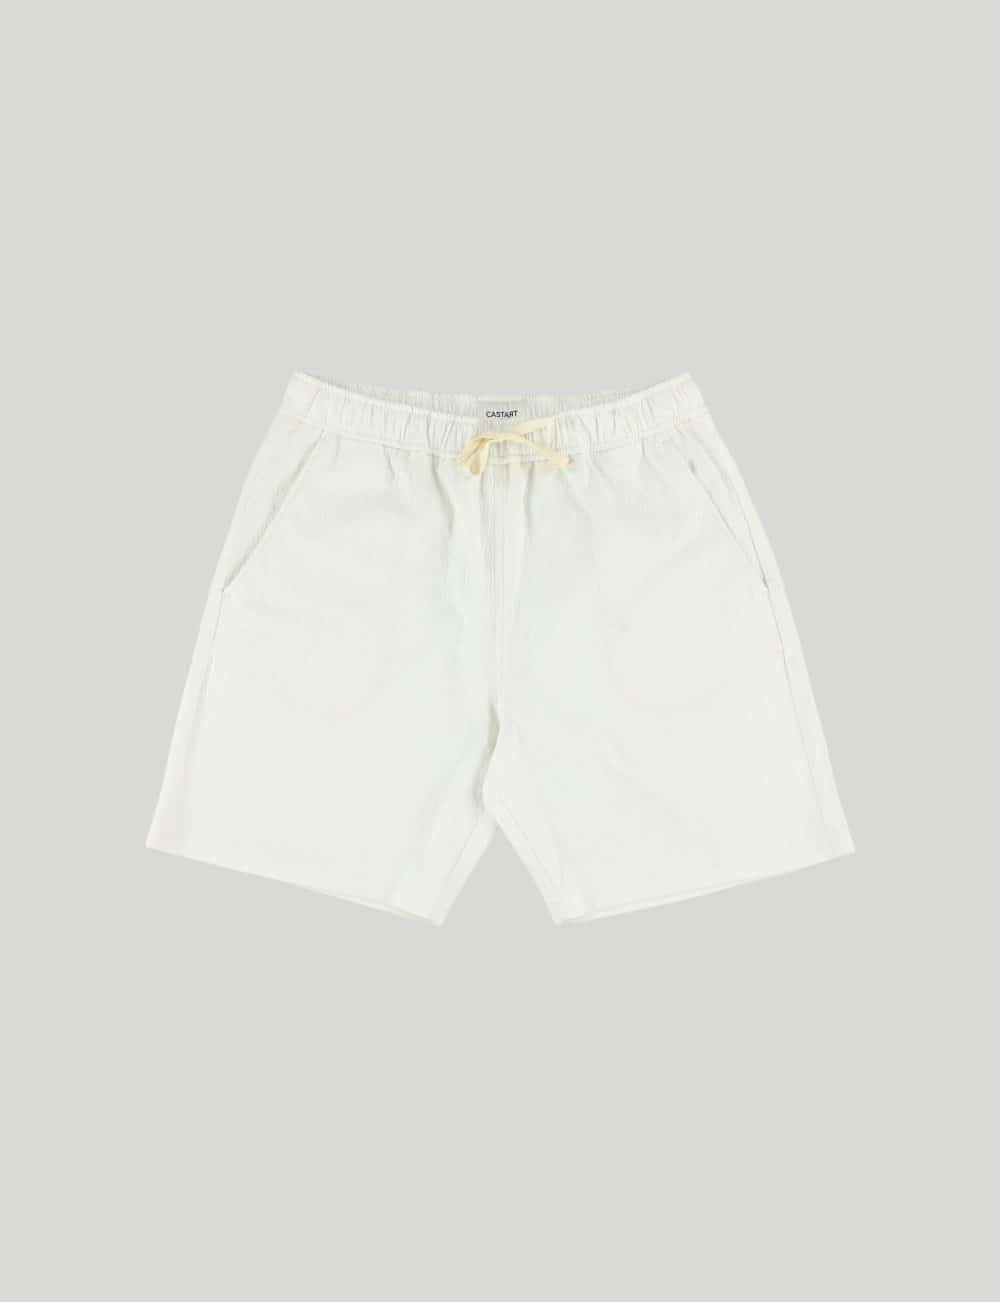 Castart - Tiger Tooth Shorts - Ecru